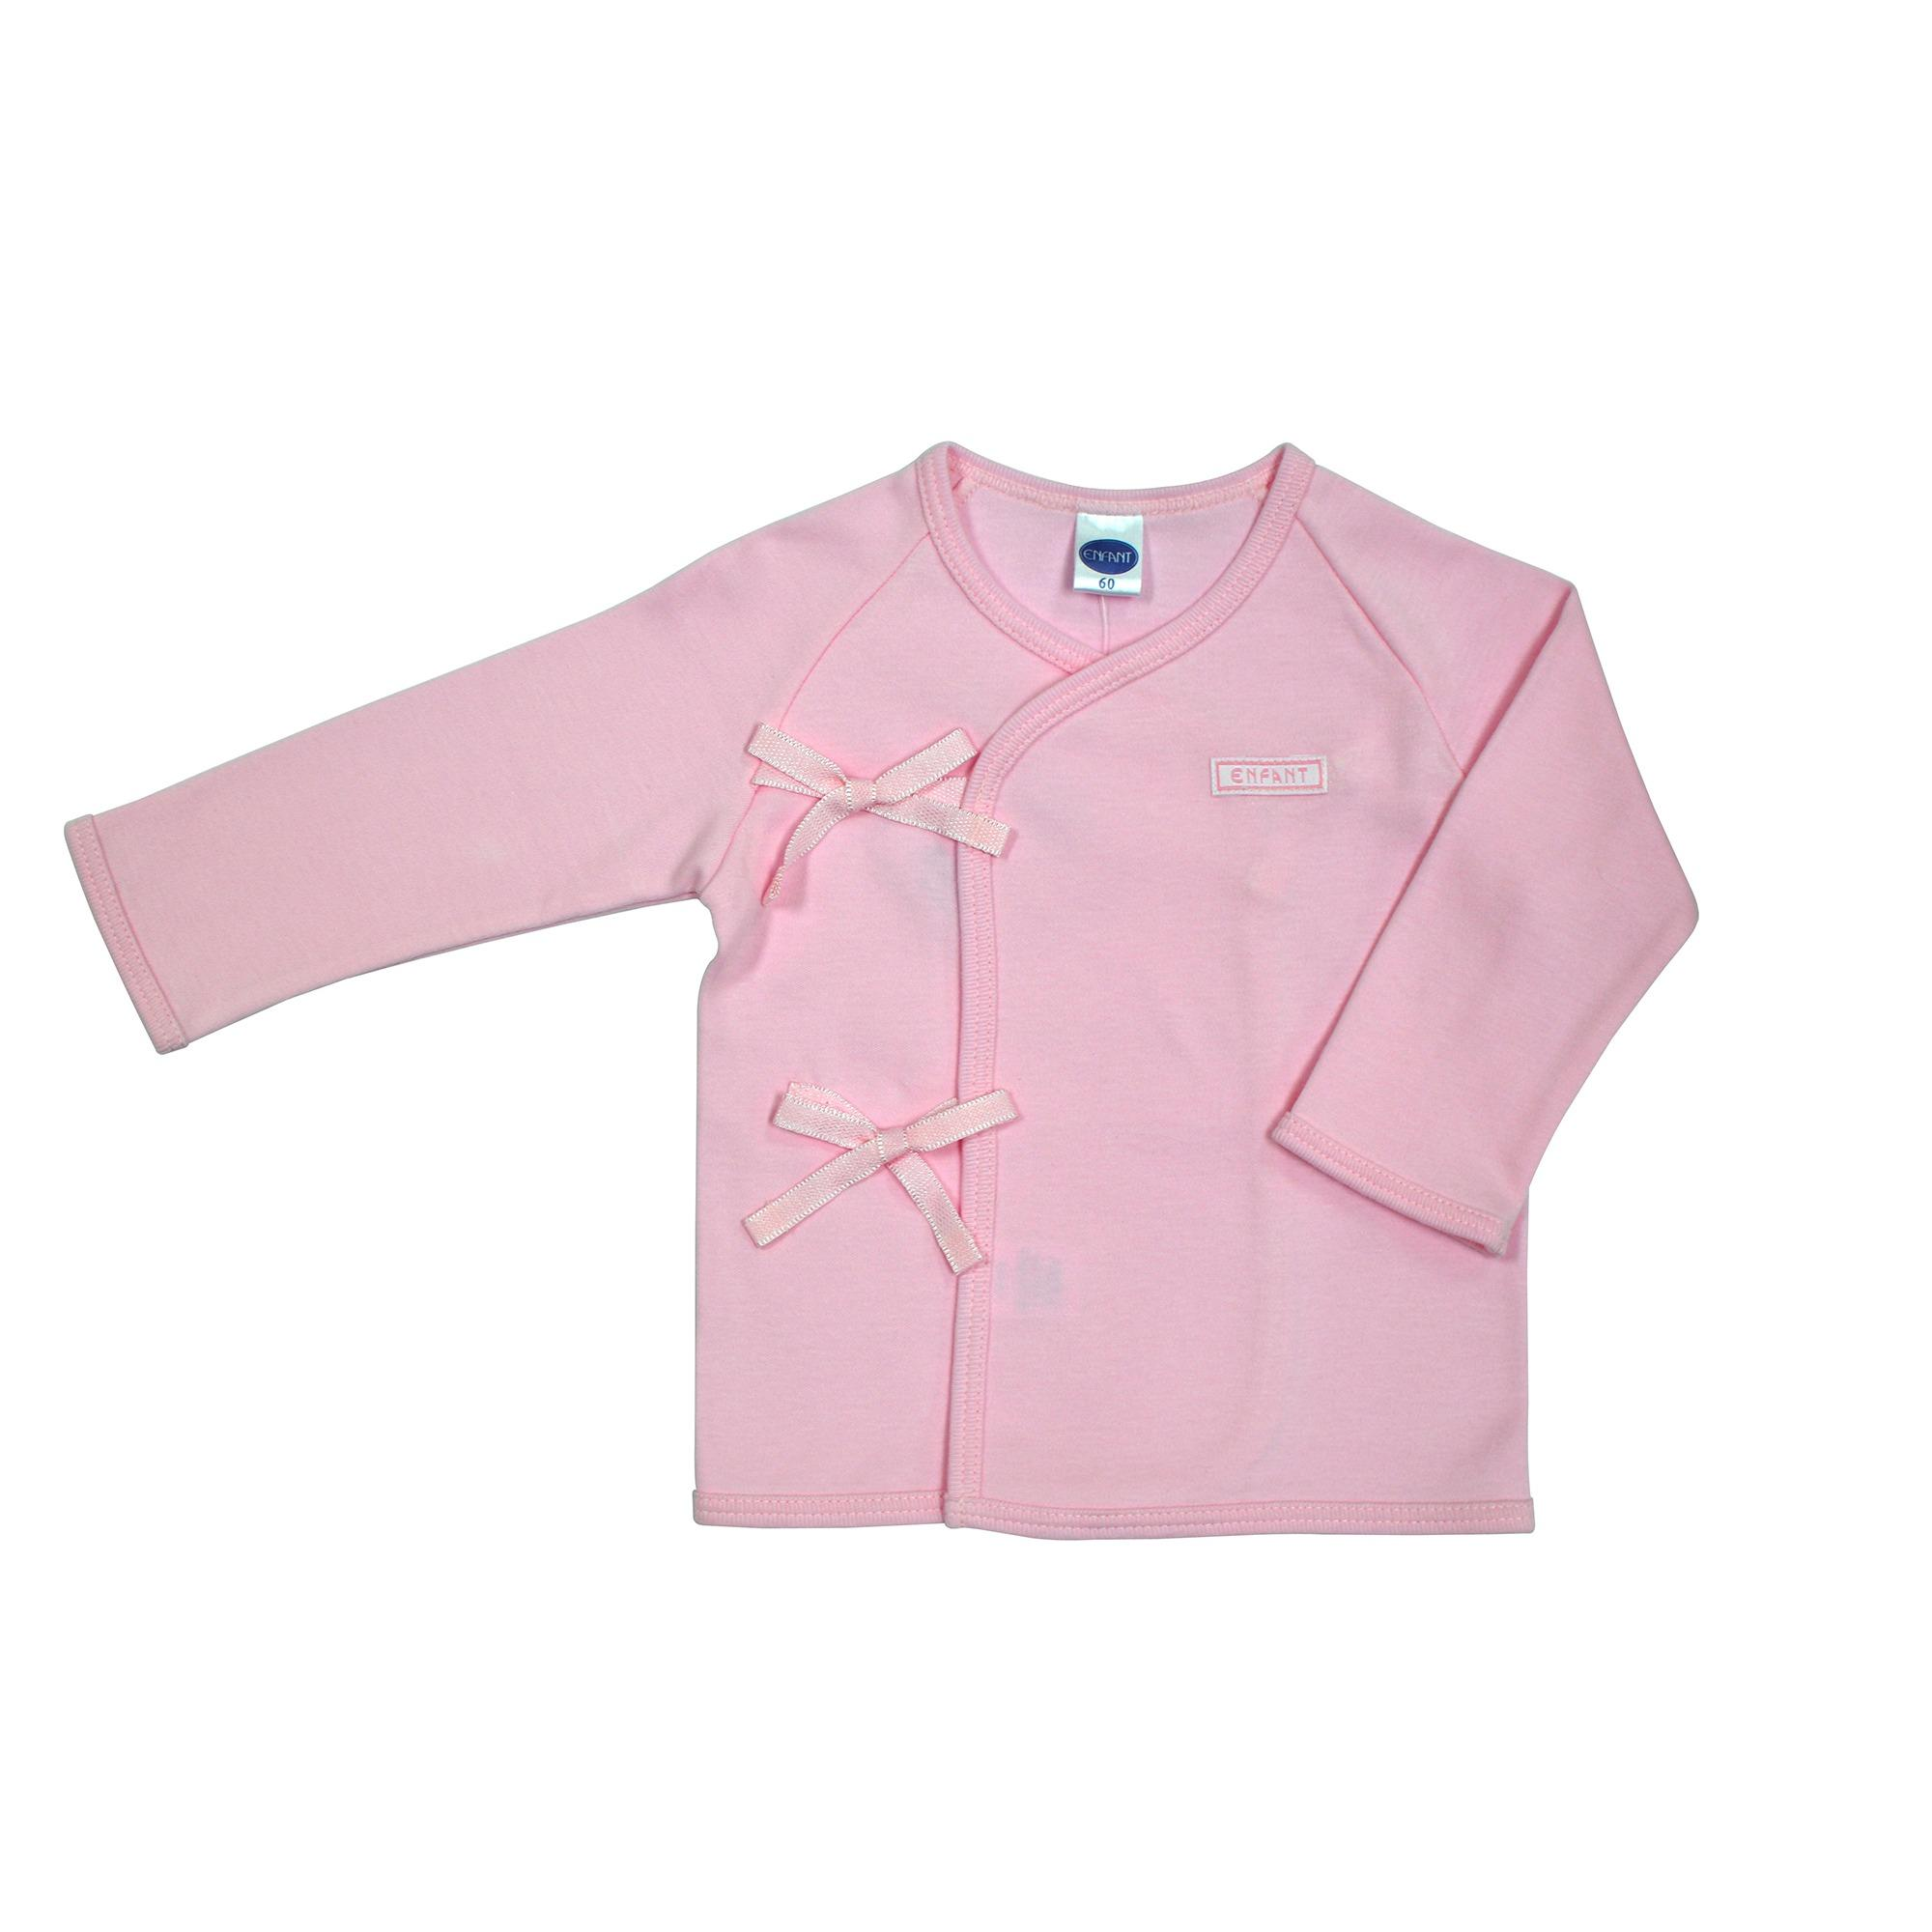 Baby Sweaters for sale Baby Fleeces online brands prices